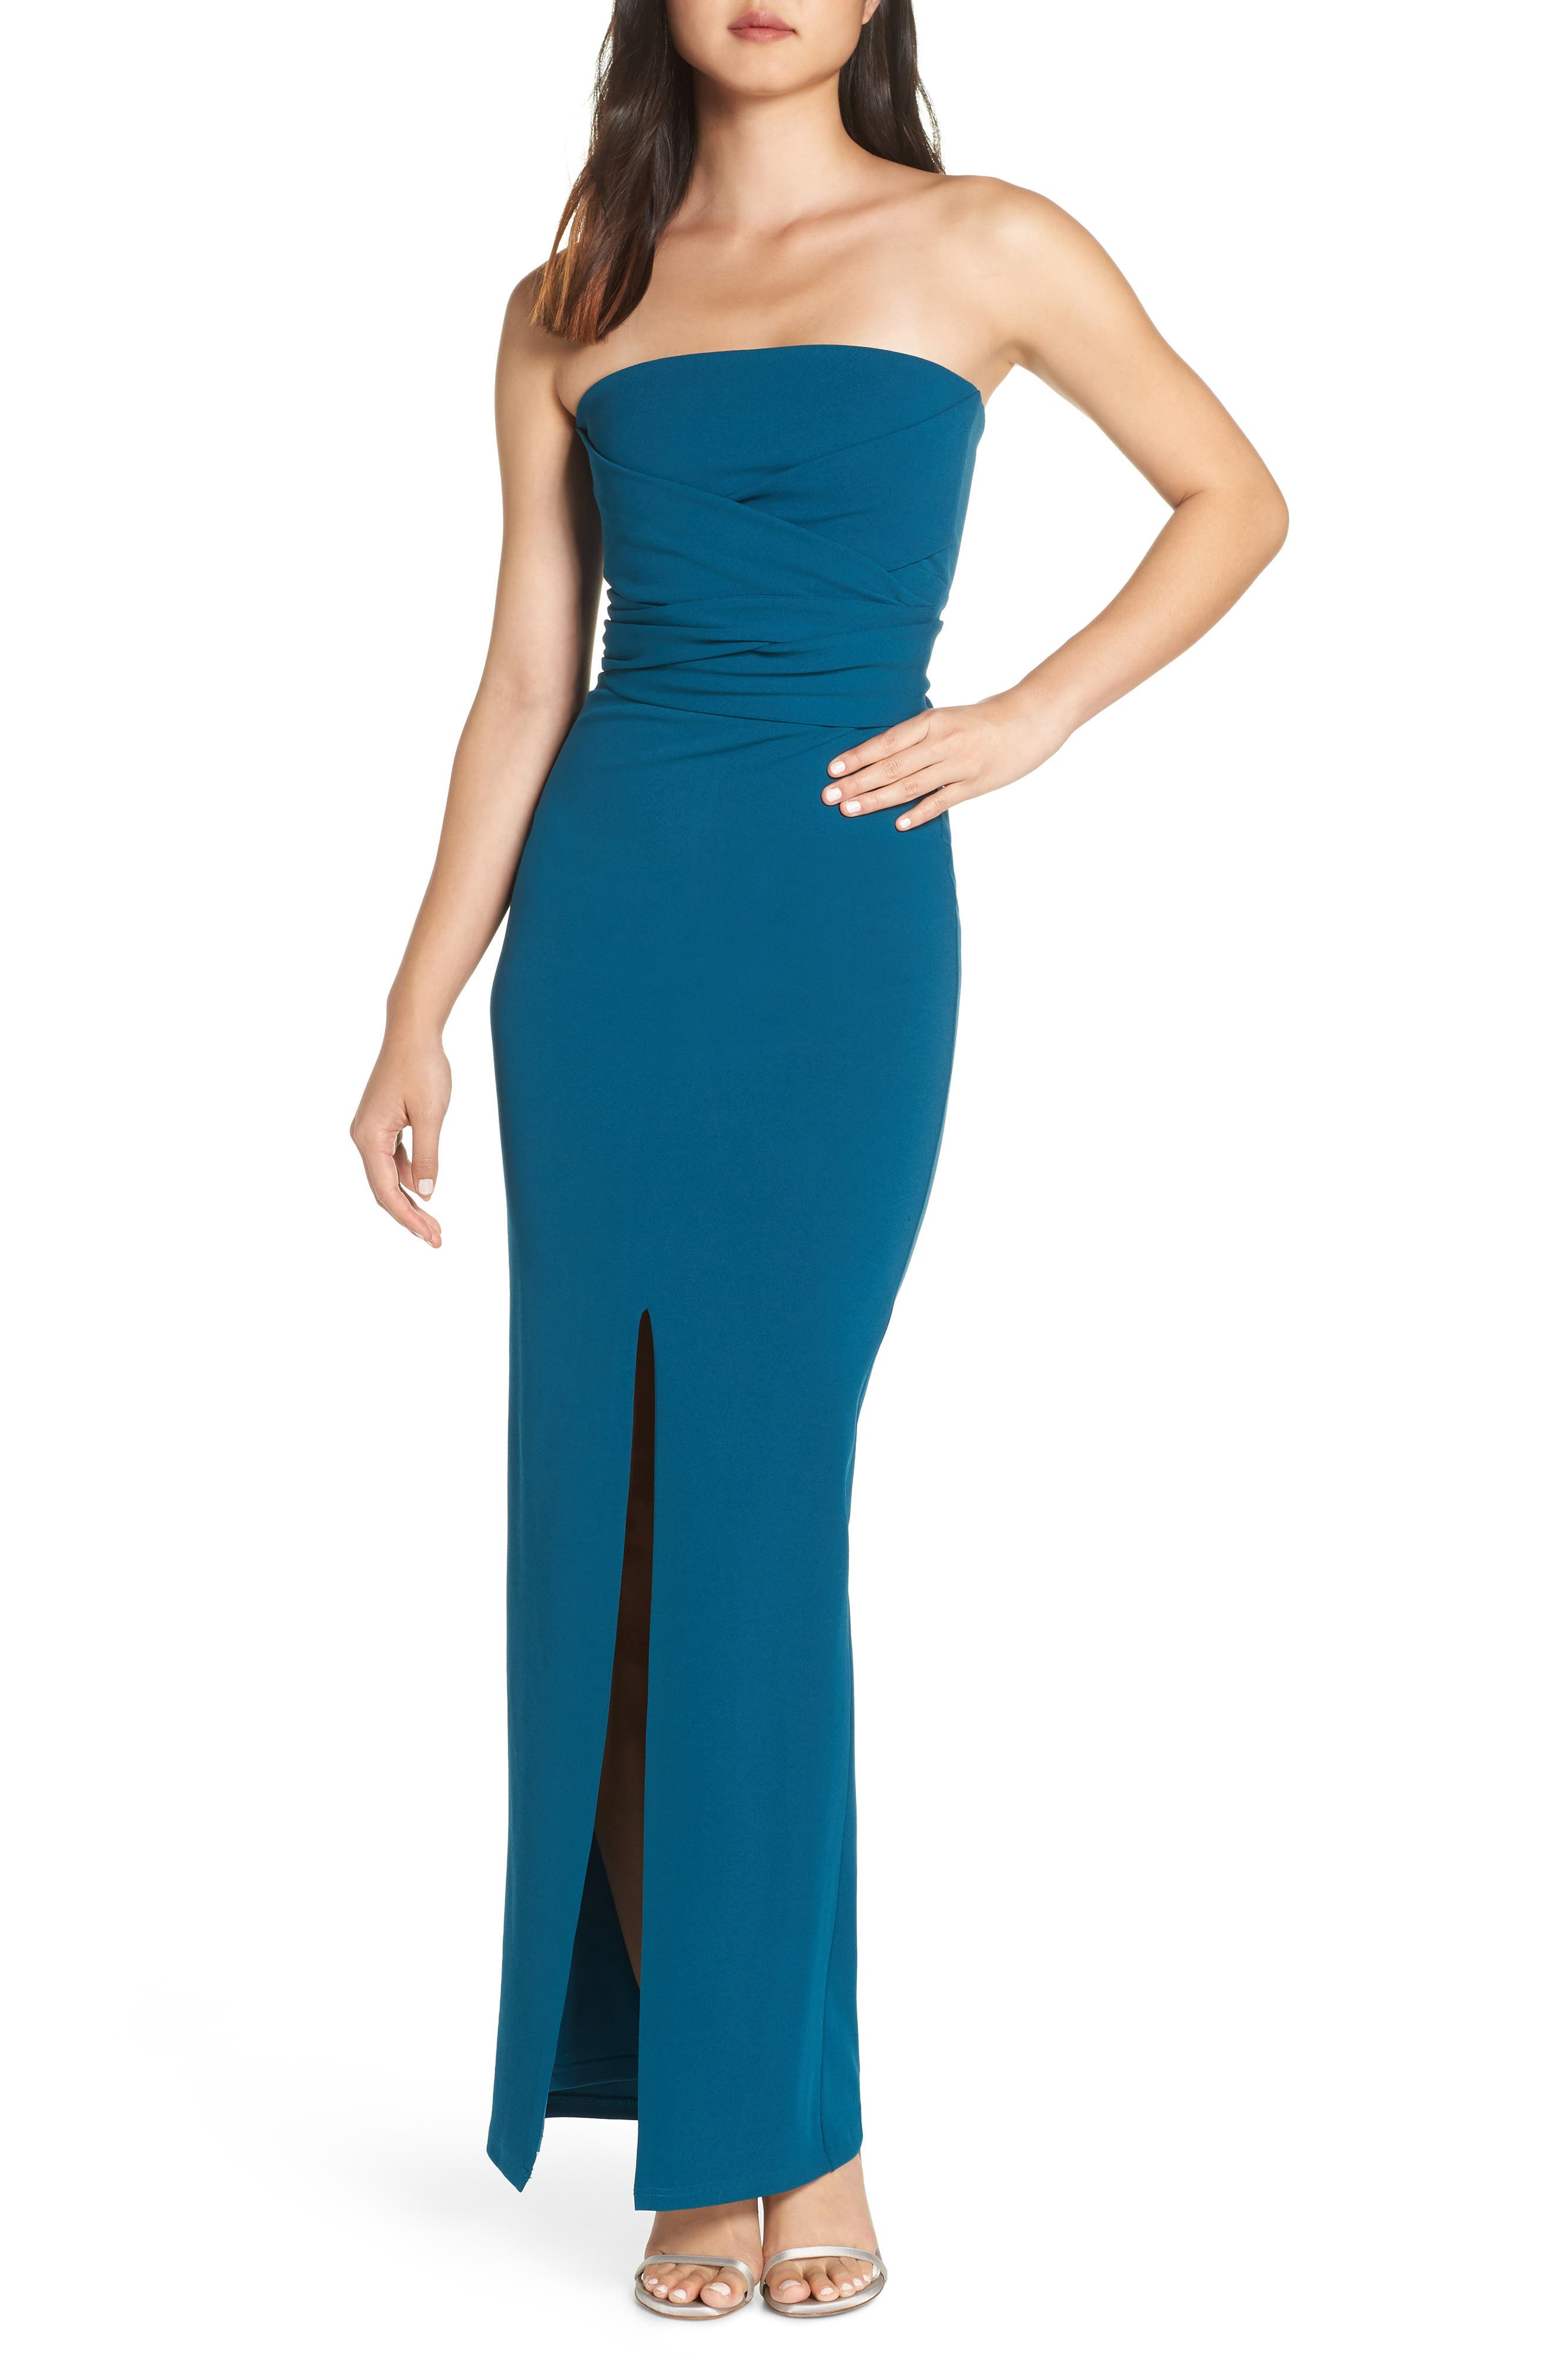 Own the Night Strapless Maxi Dress,                             Main thumbnail 1, color,                             TURQUOISE